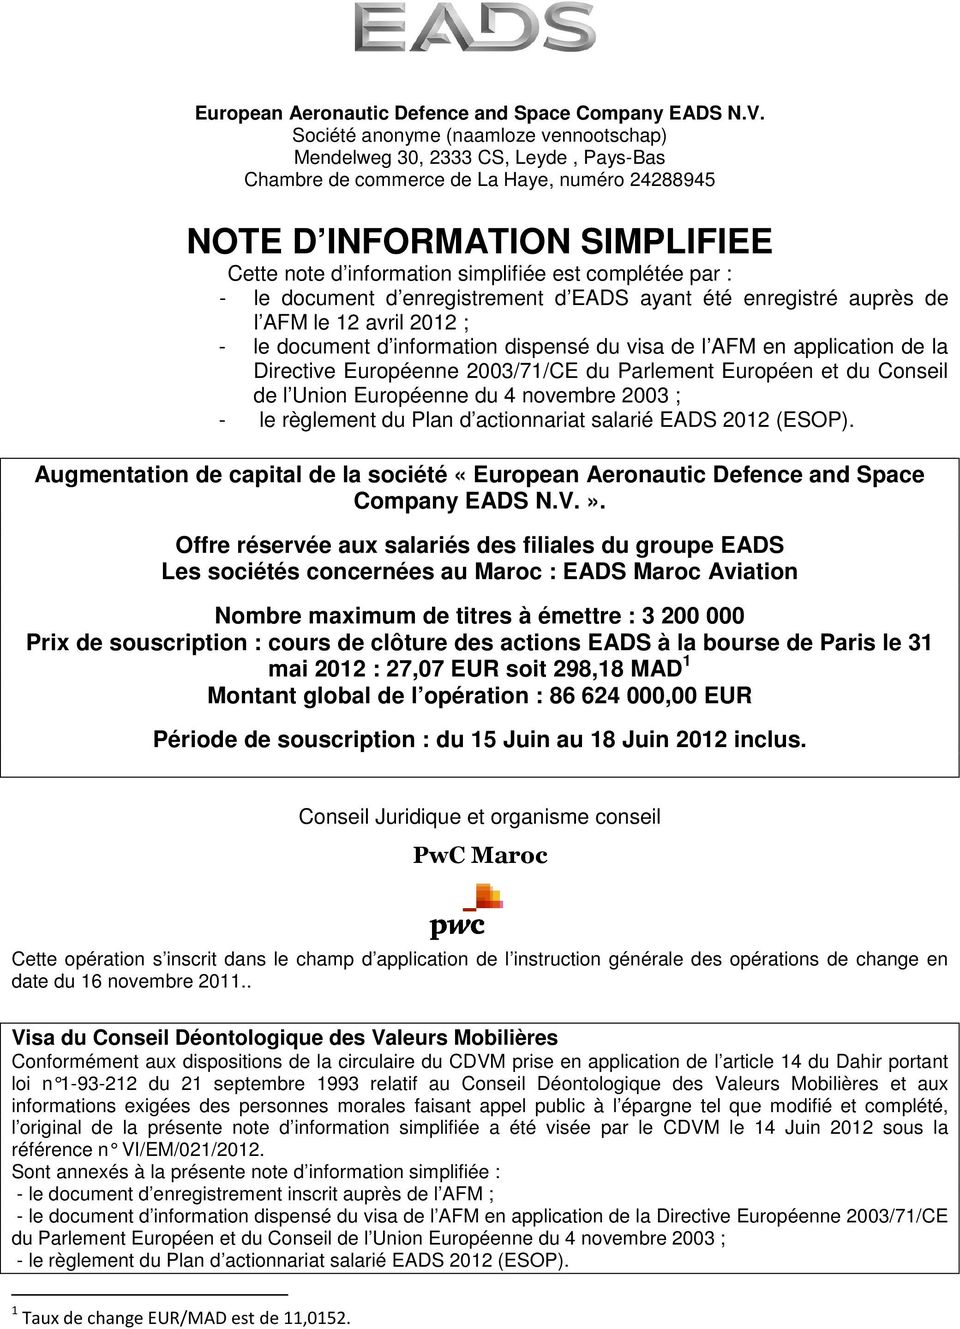 complétée par : - le document d enregistrement d EADS ayant été enregistré auprès de l AFM le 12 avril 2012 ; - le document d information dispensé du visa de l AFM en application de la Directive